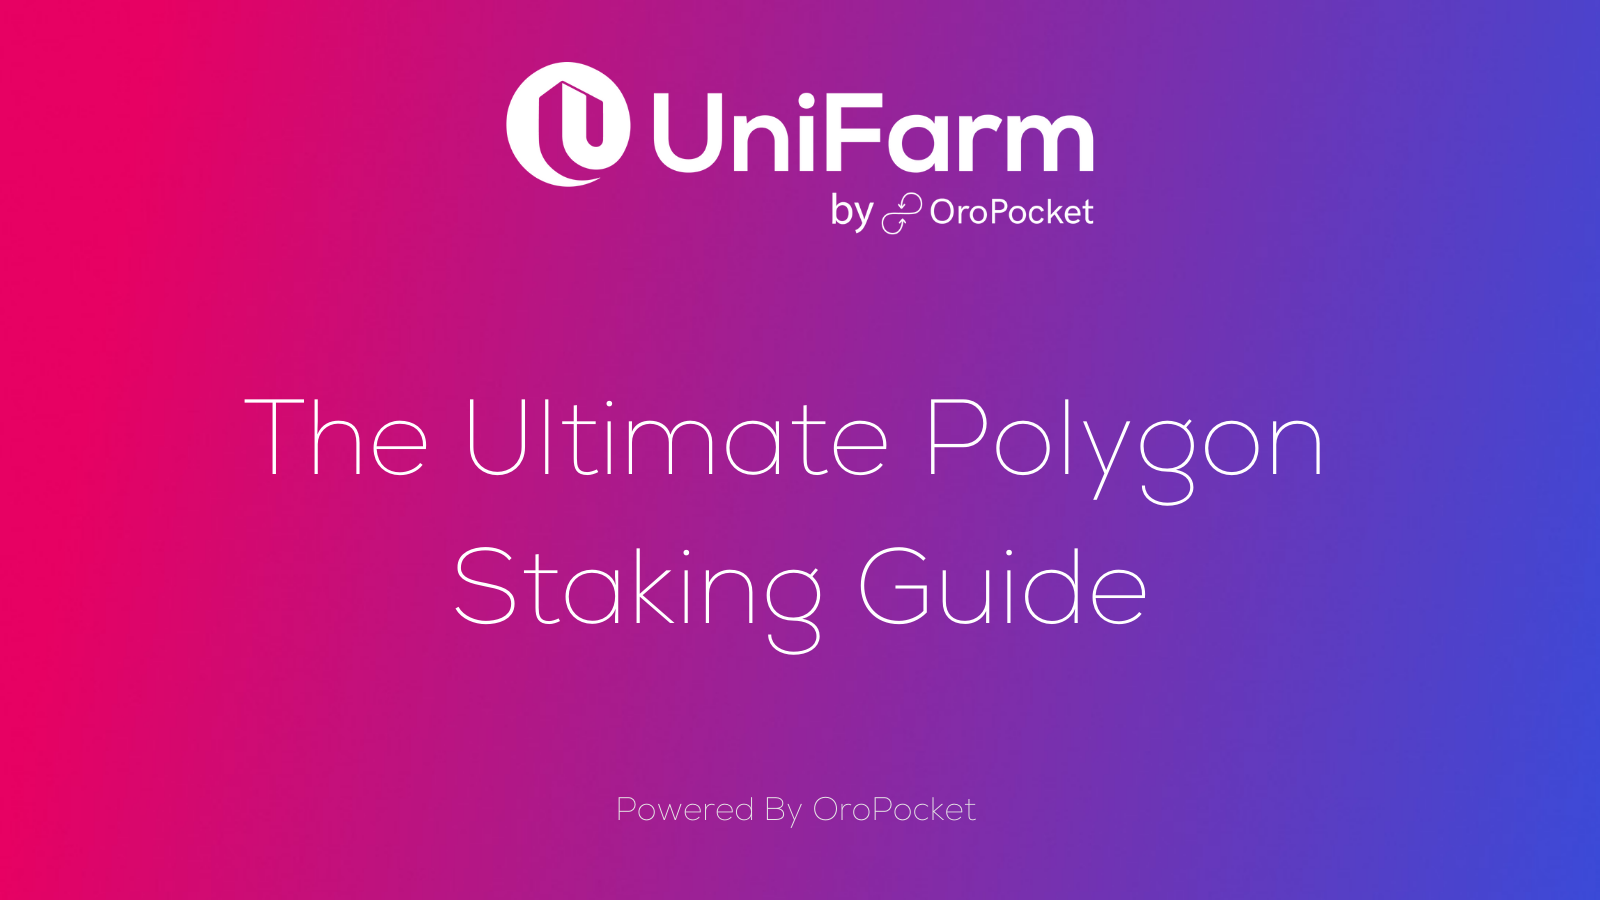 The Ultimate Polygon Staking Guide